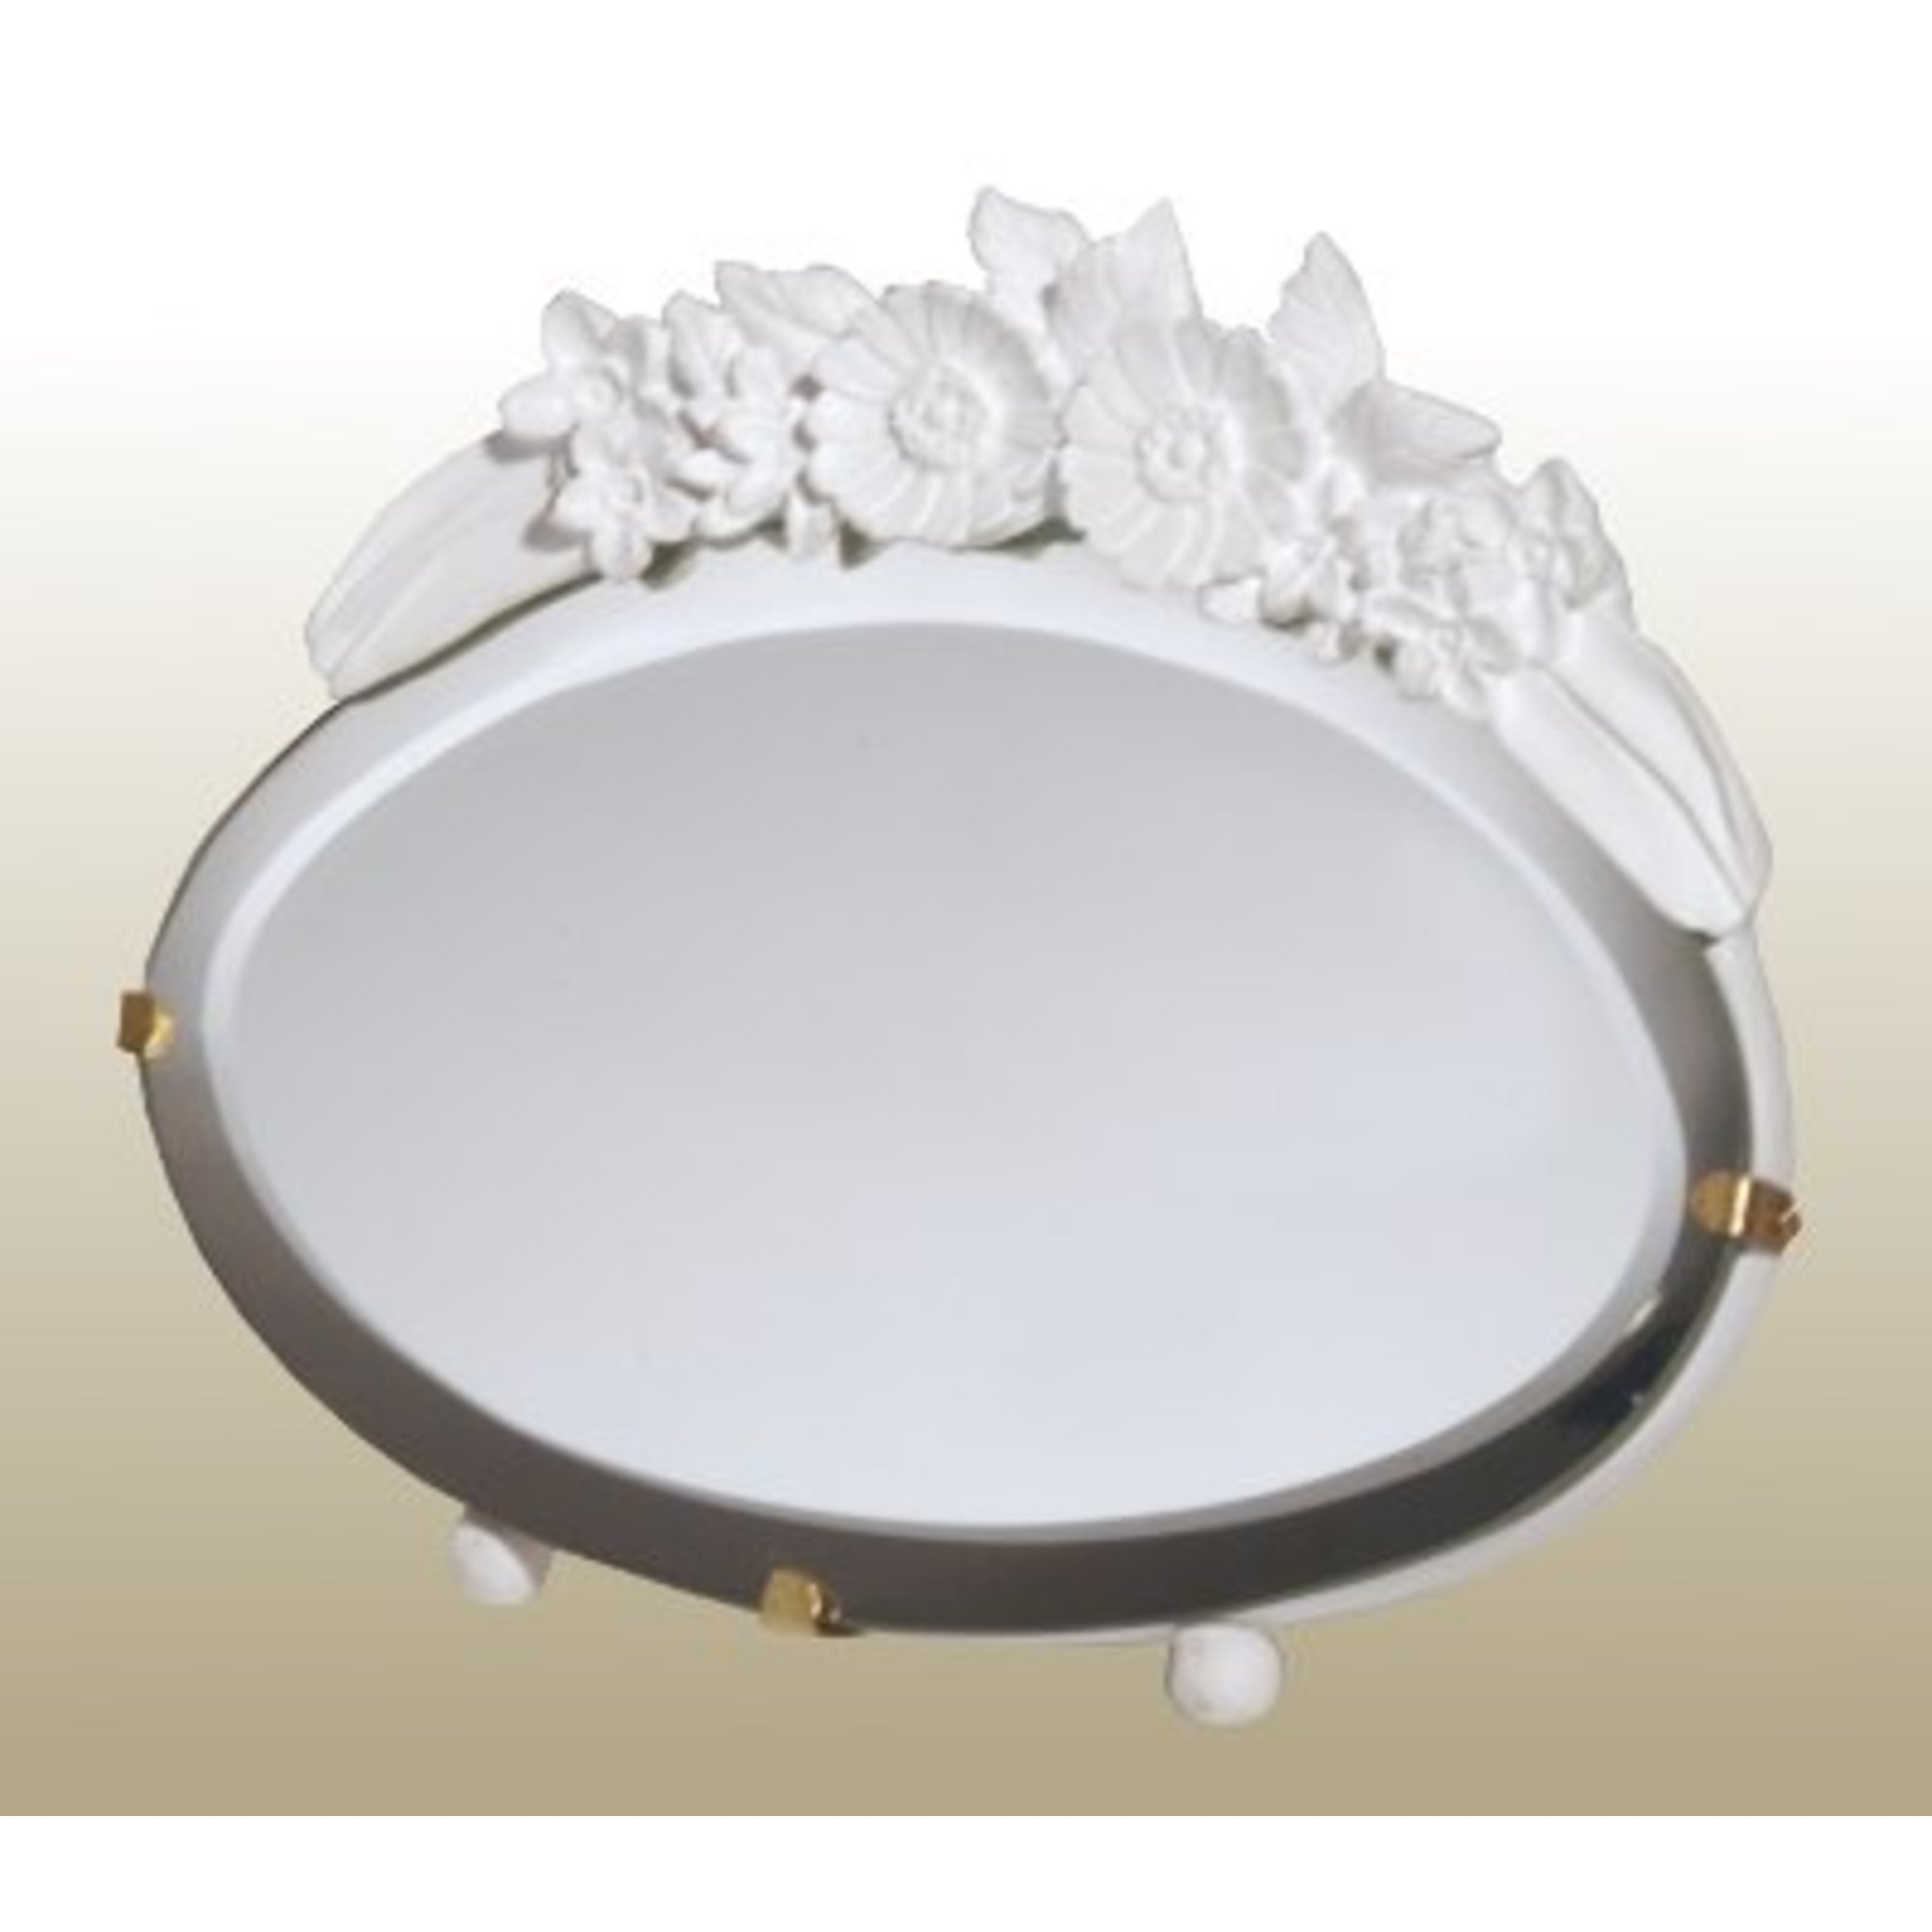 Barbola Floral White Chalk Paint Oval Decorative Table or Wall Mirror